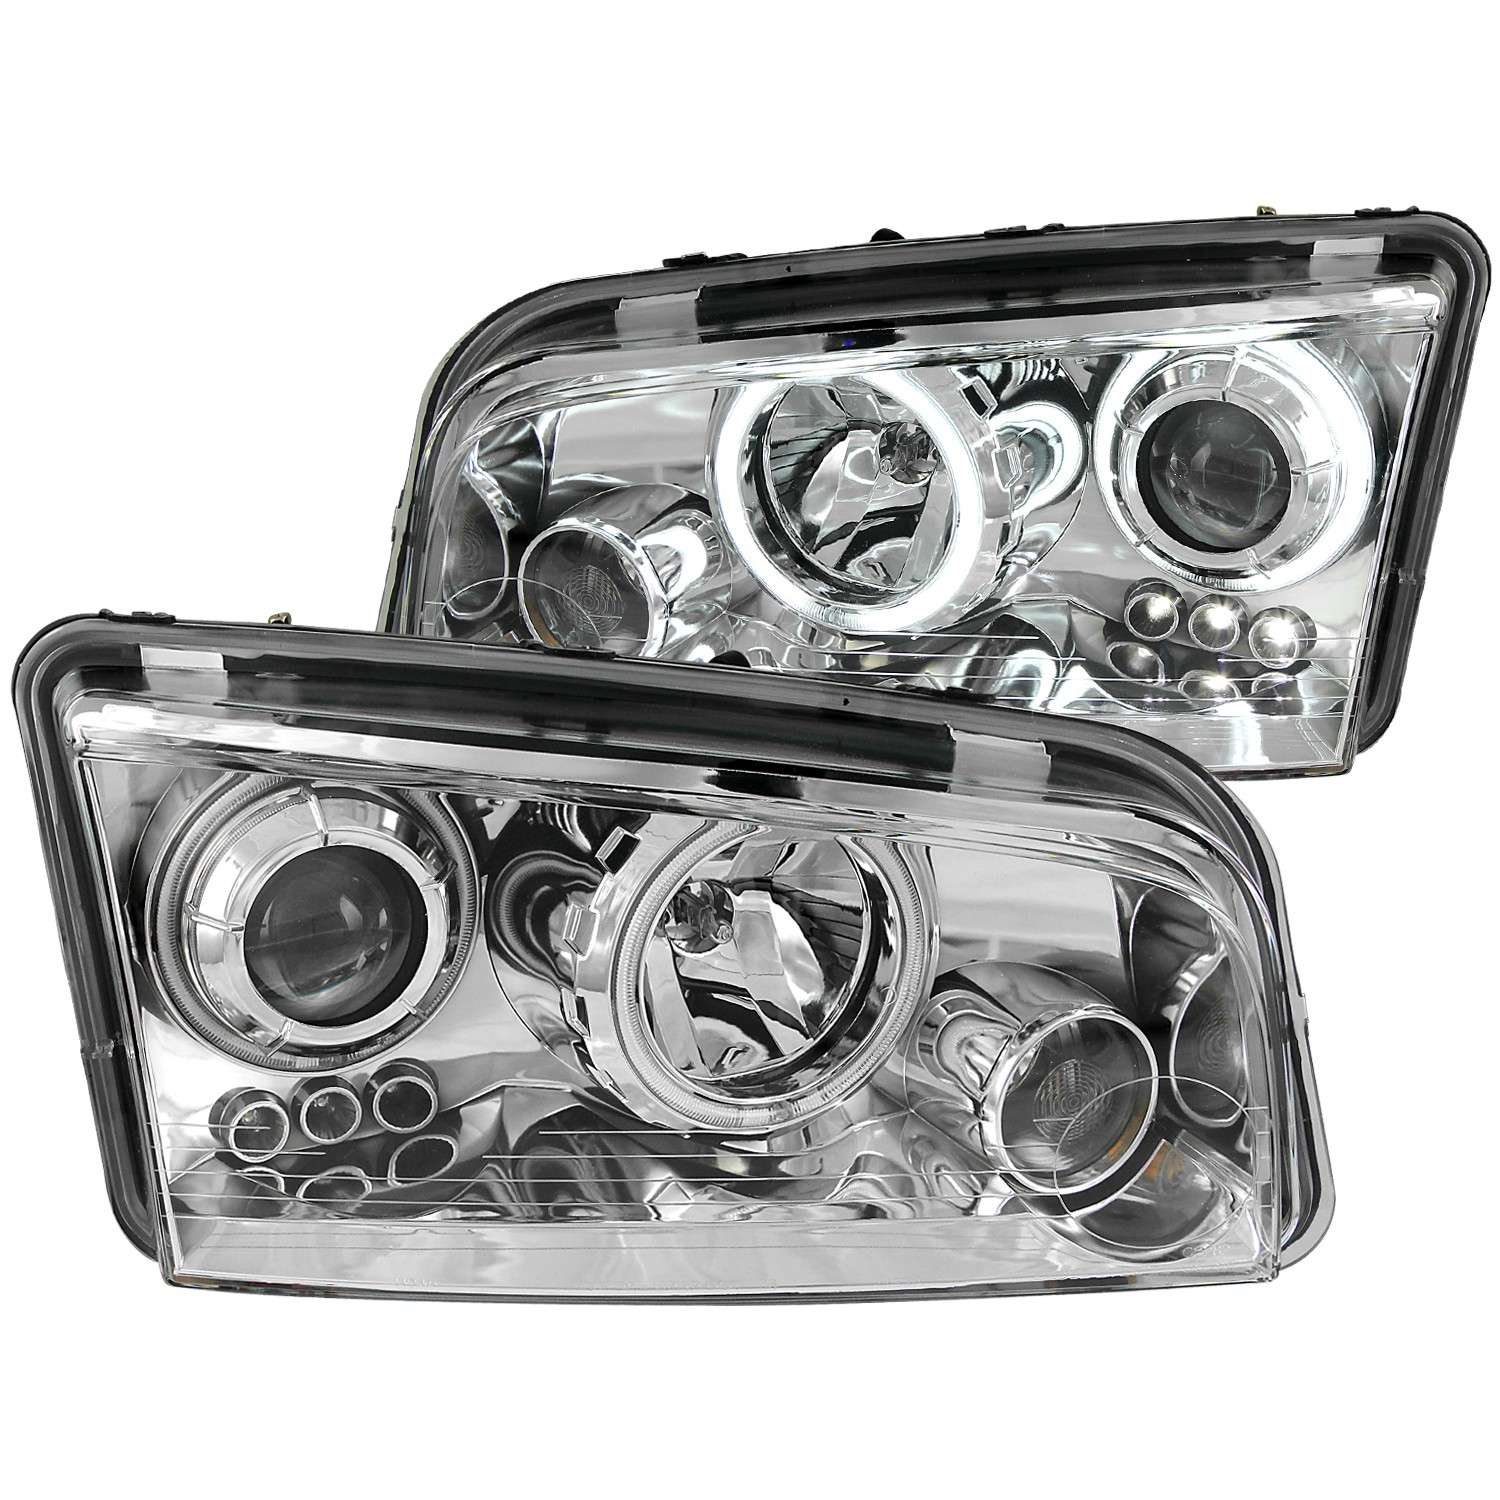 2006-2010 Dodge Charger ANZO Project Halo Head Lights w/Halogen Bulbs, Clear Lens & Chrome Housing (CCFL)